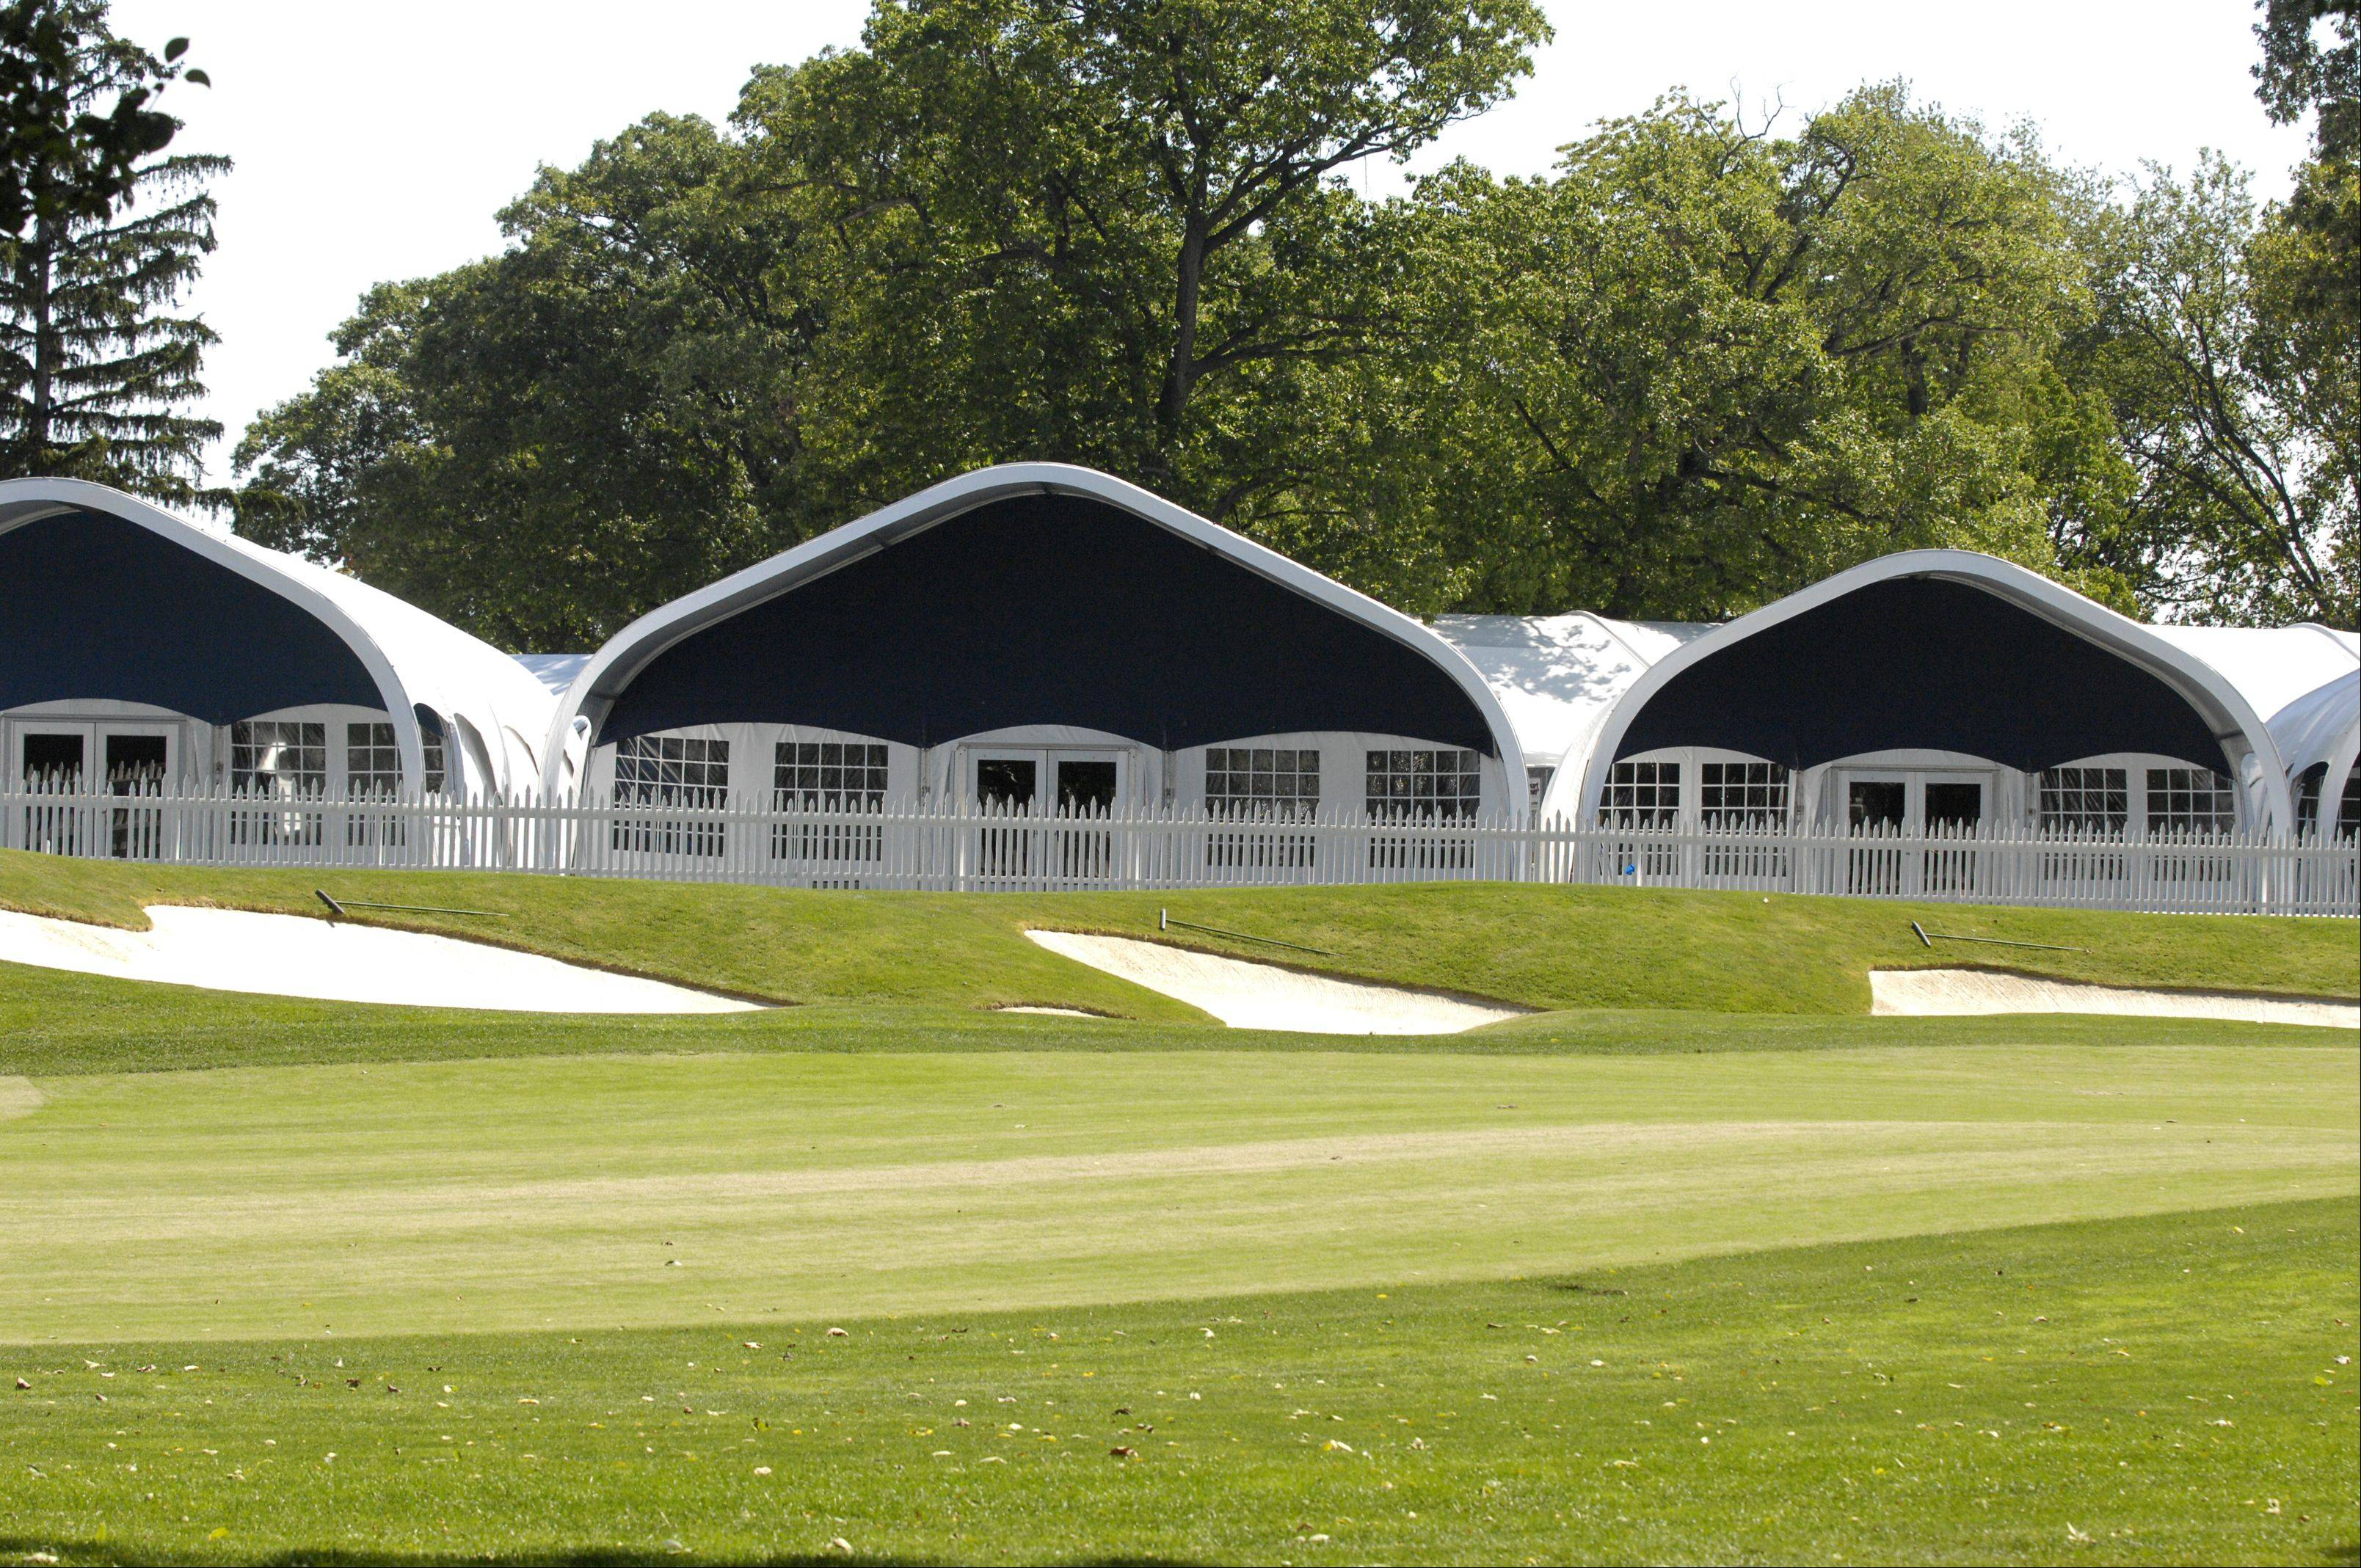 Ryder Cup corporate chalets at Medinah range in size from 50- to 300-guest tents and overlook the golf course.